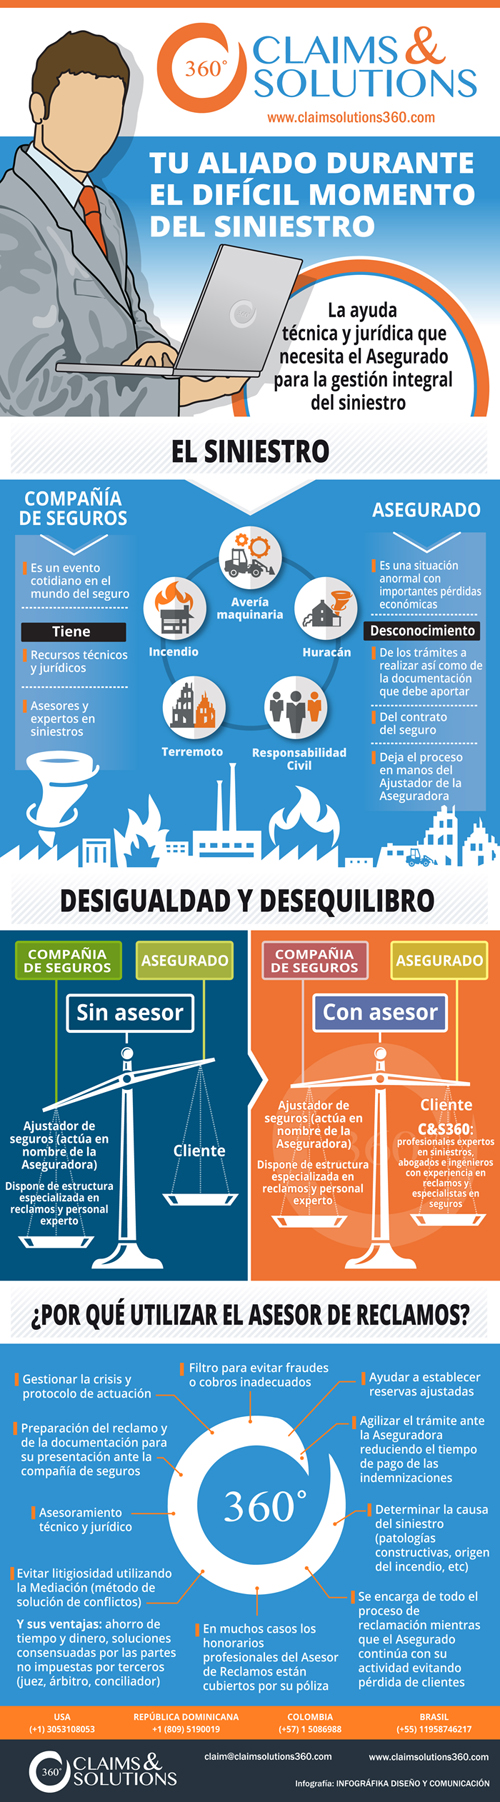 Claims&Solutions 360 (Infografía)